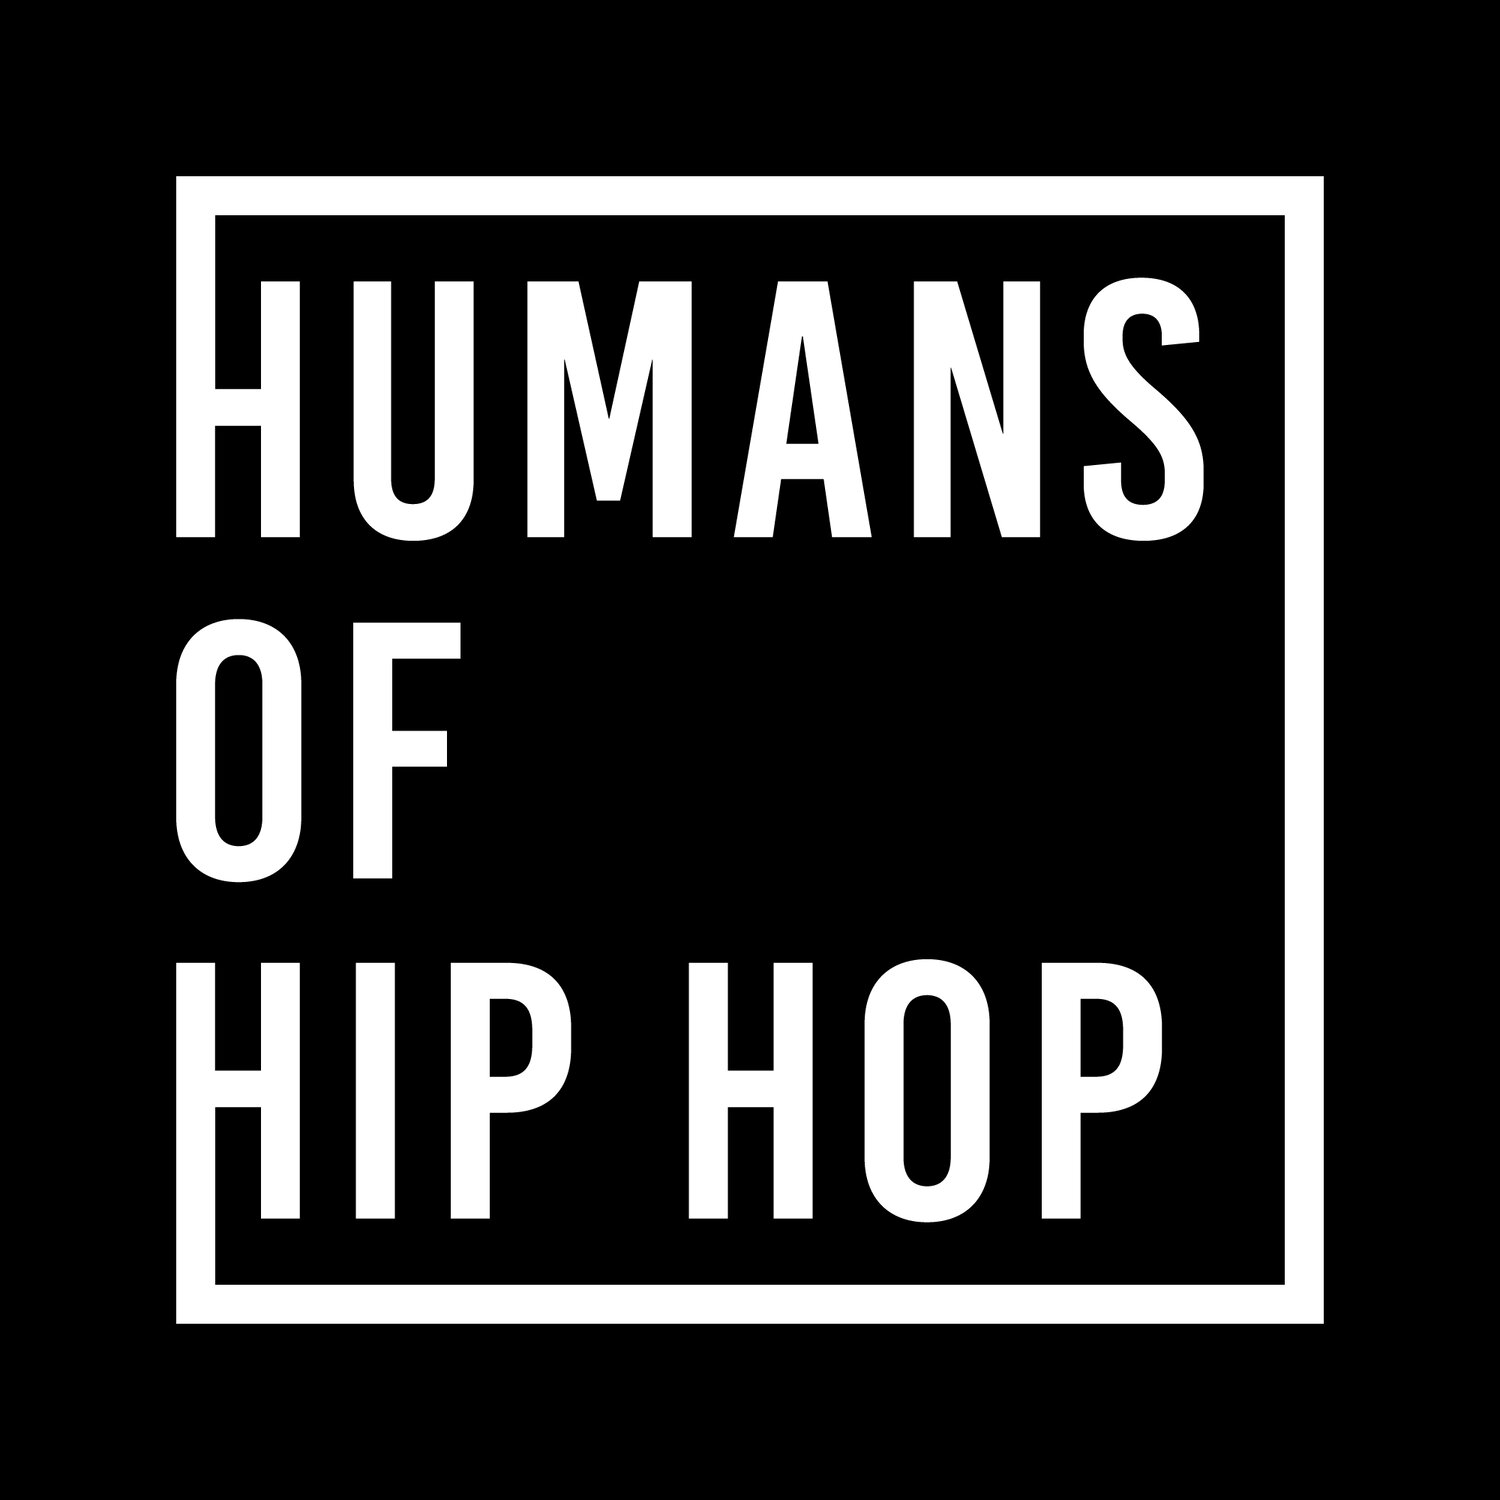 Humans of Hip Hop